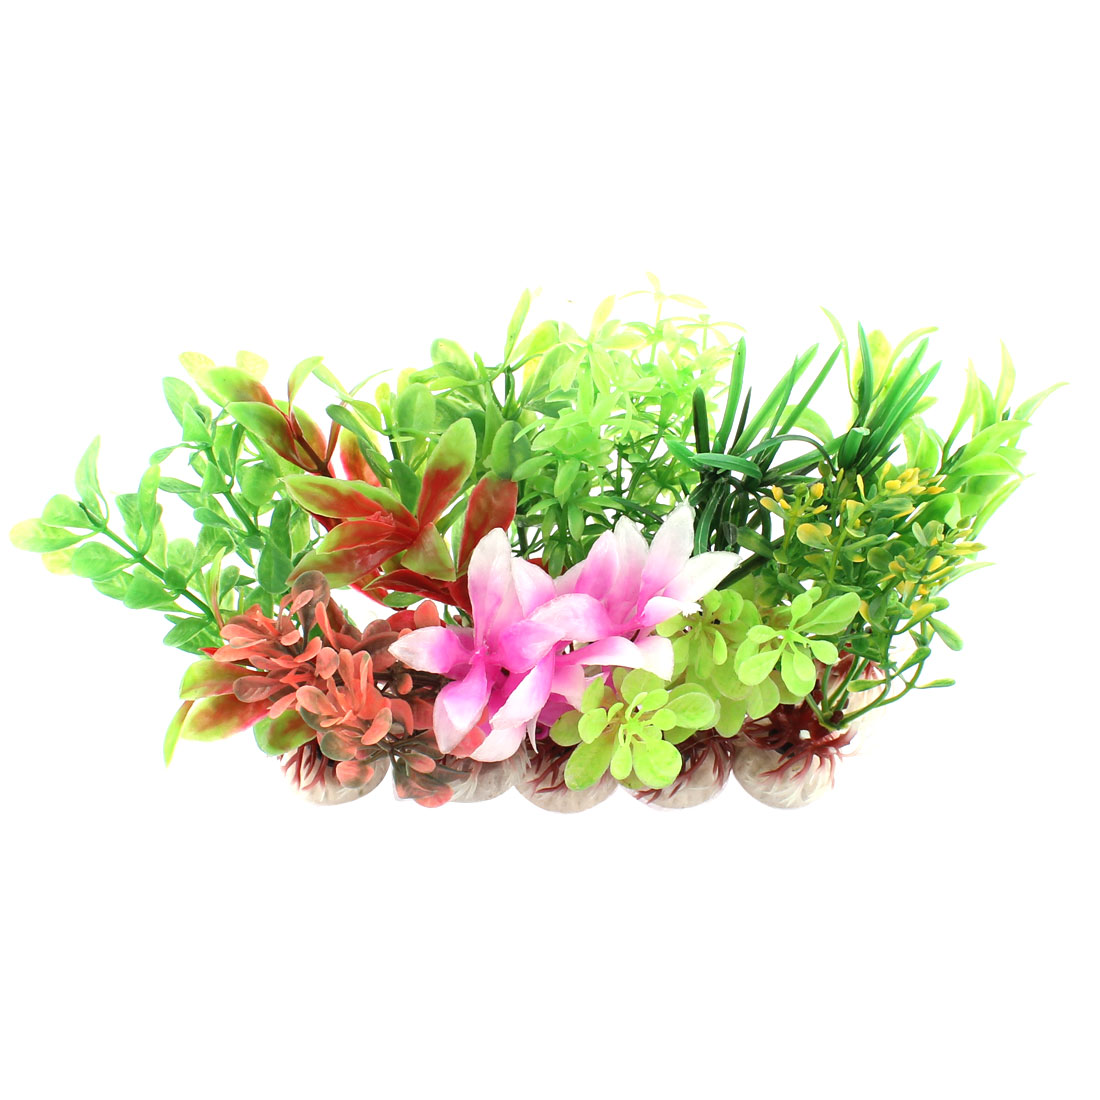 Aquarium Artificial Plastic Water Grass Plants Decor 10cm Height 10 in 1